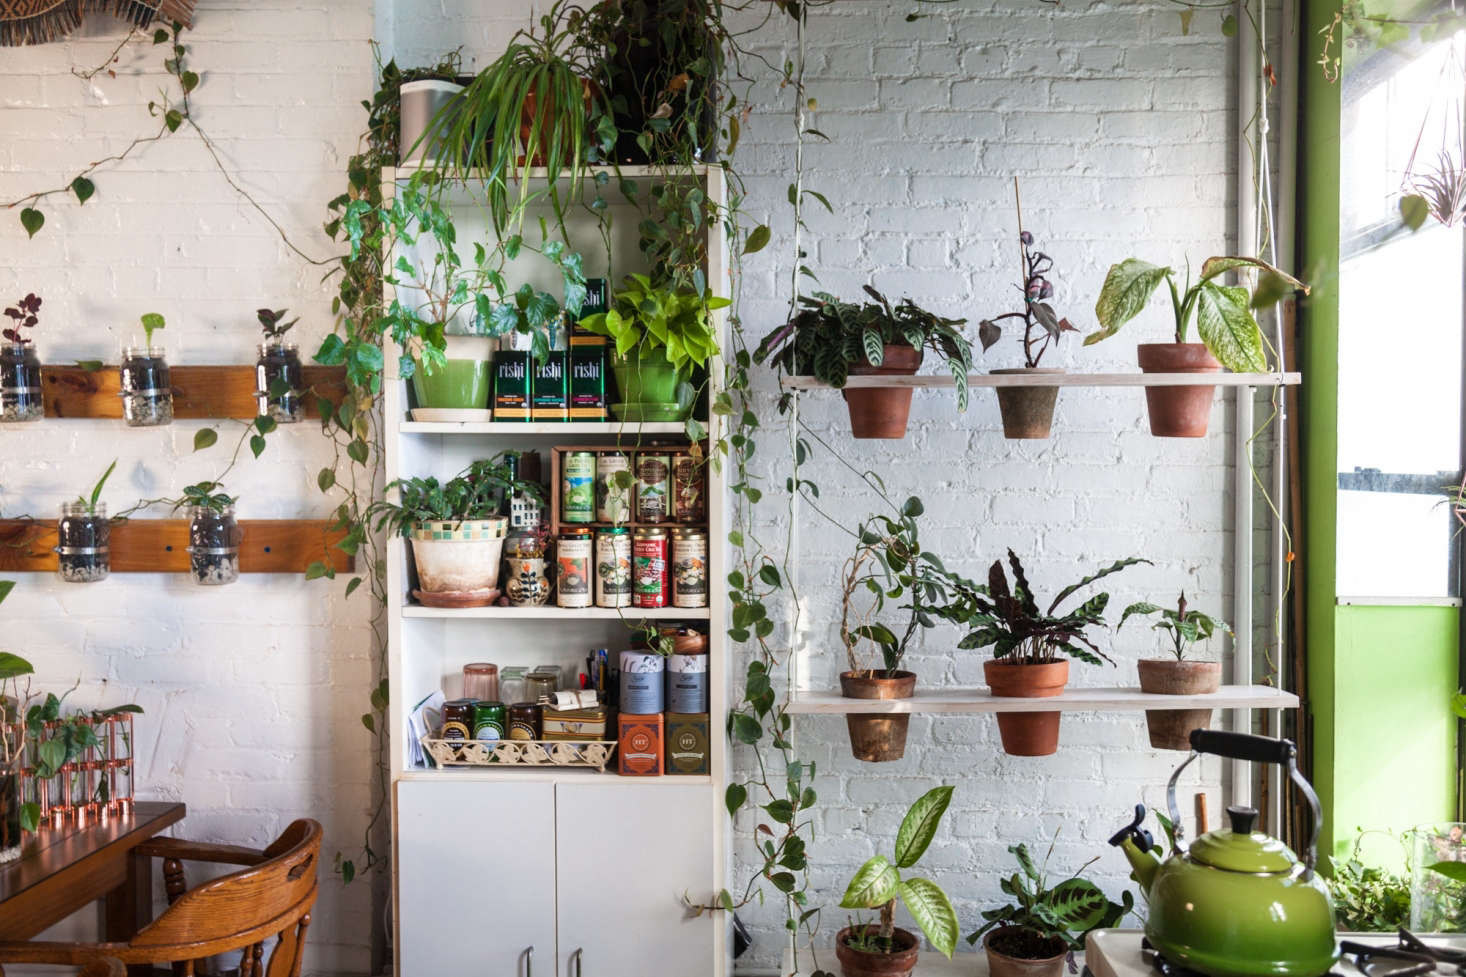 Photograph courtesy of@homesteadbrooklyn, fromLiving with Houseplants: Four Years Later in a Brooklyn Apartment.